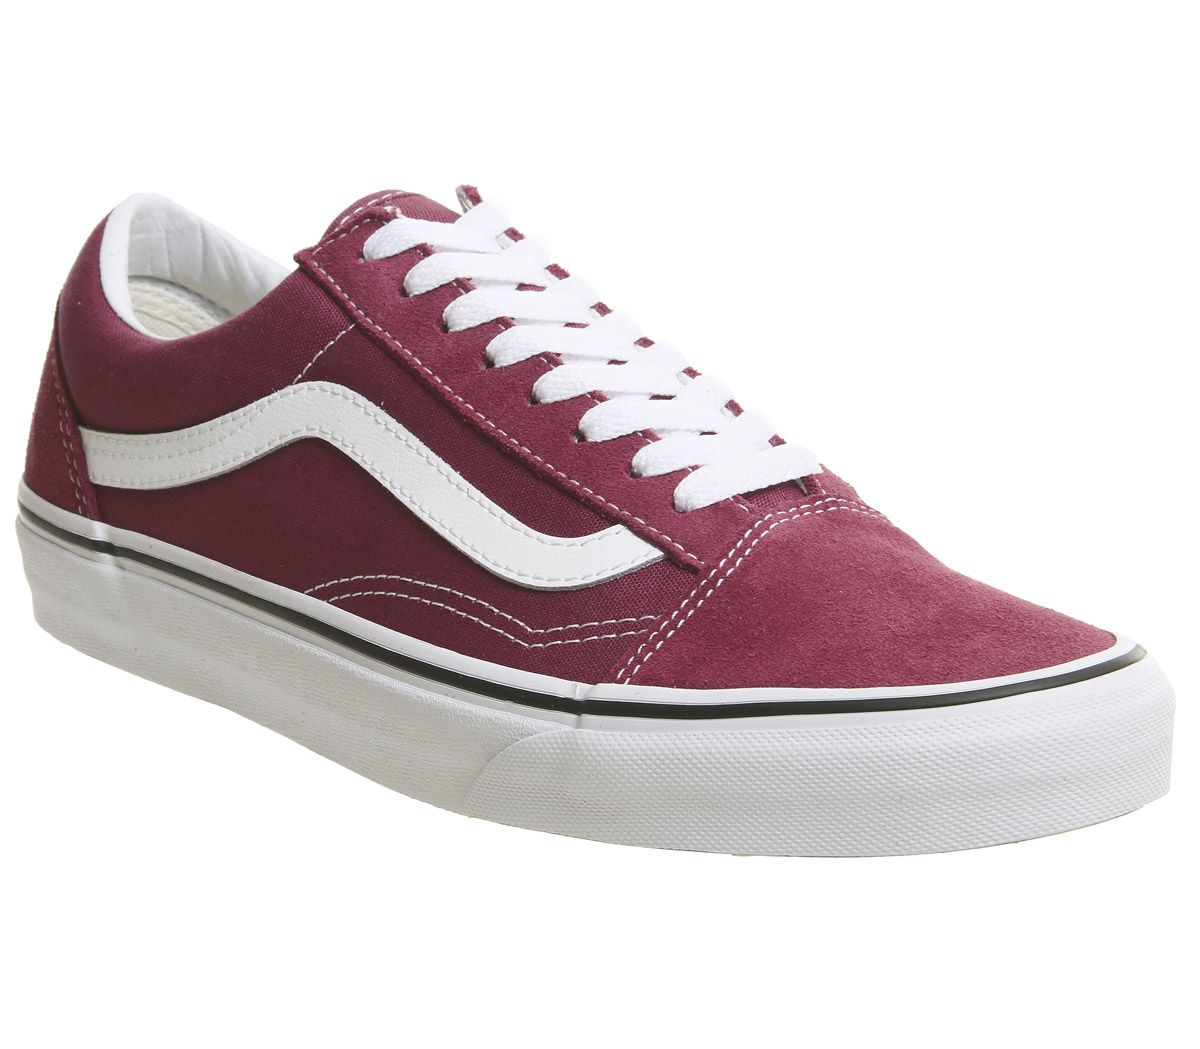 34b1f0d4d71c23 Vans Old Skool Trainers Dry Rose - Unisex Sports